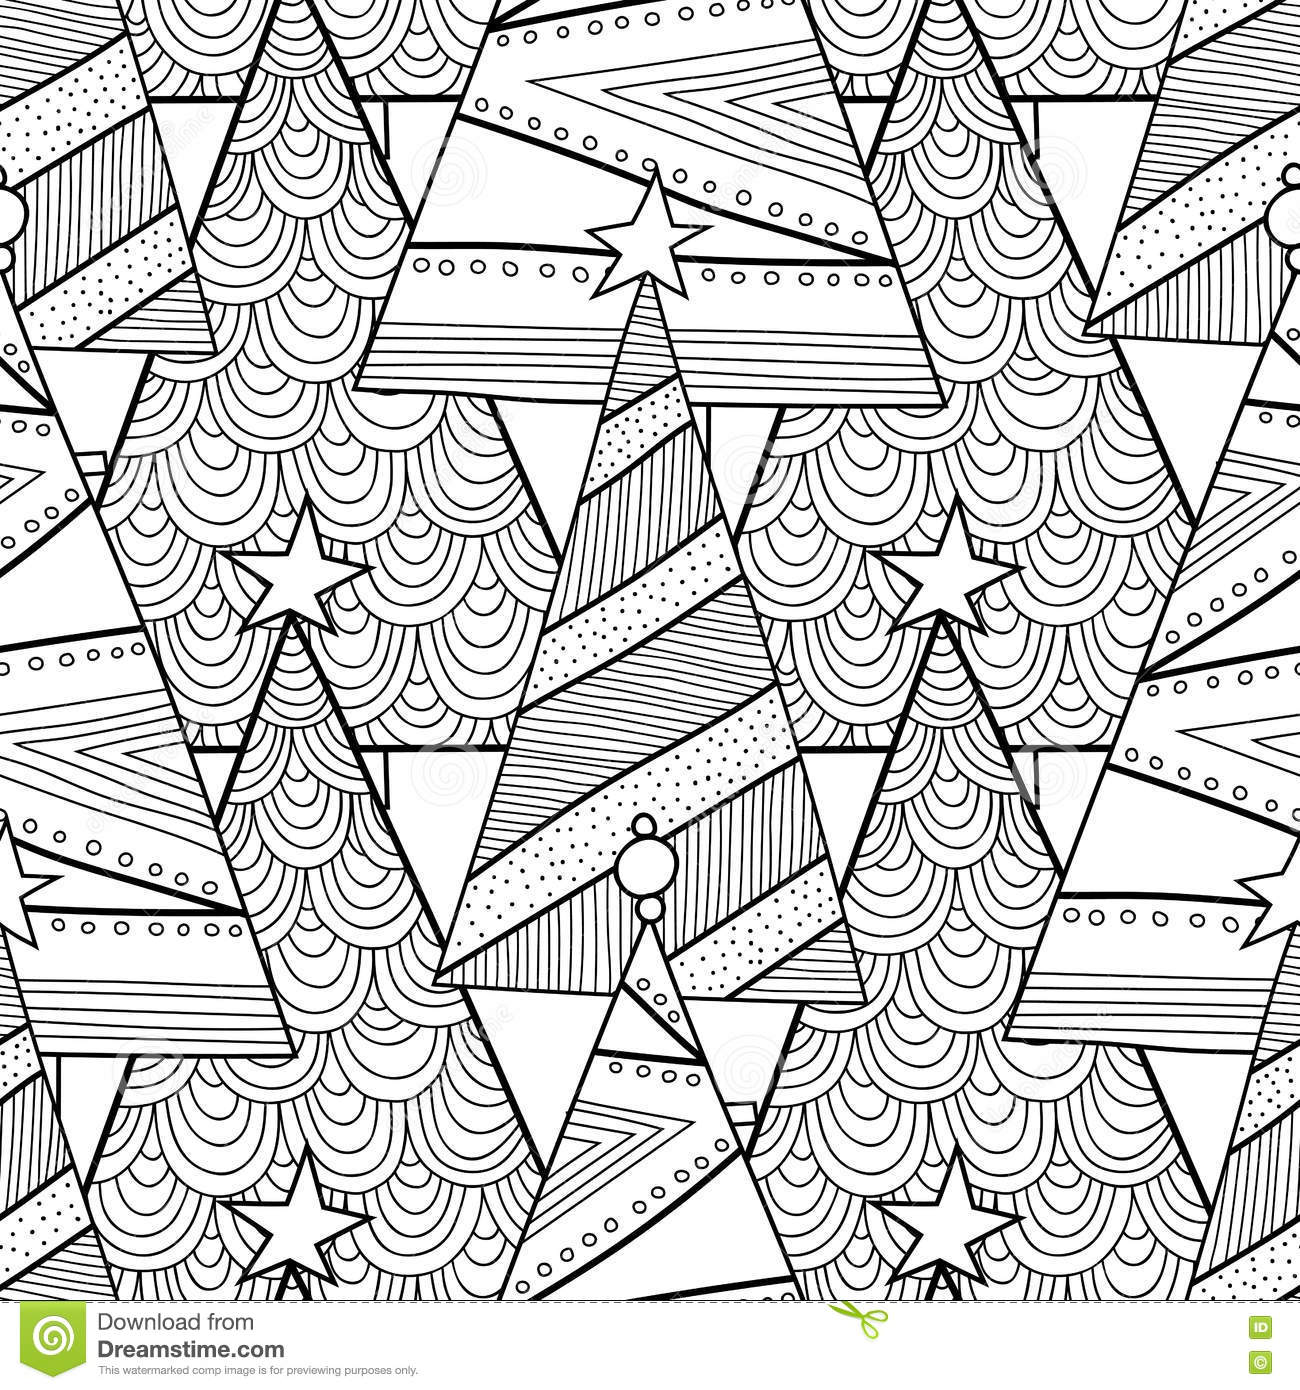 Black And White Pattern With Christmas Trees For Coloring ...  Black And White...